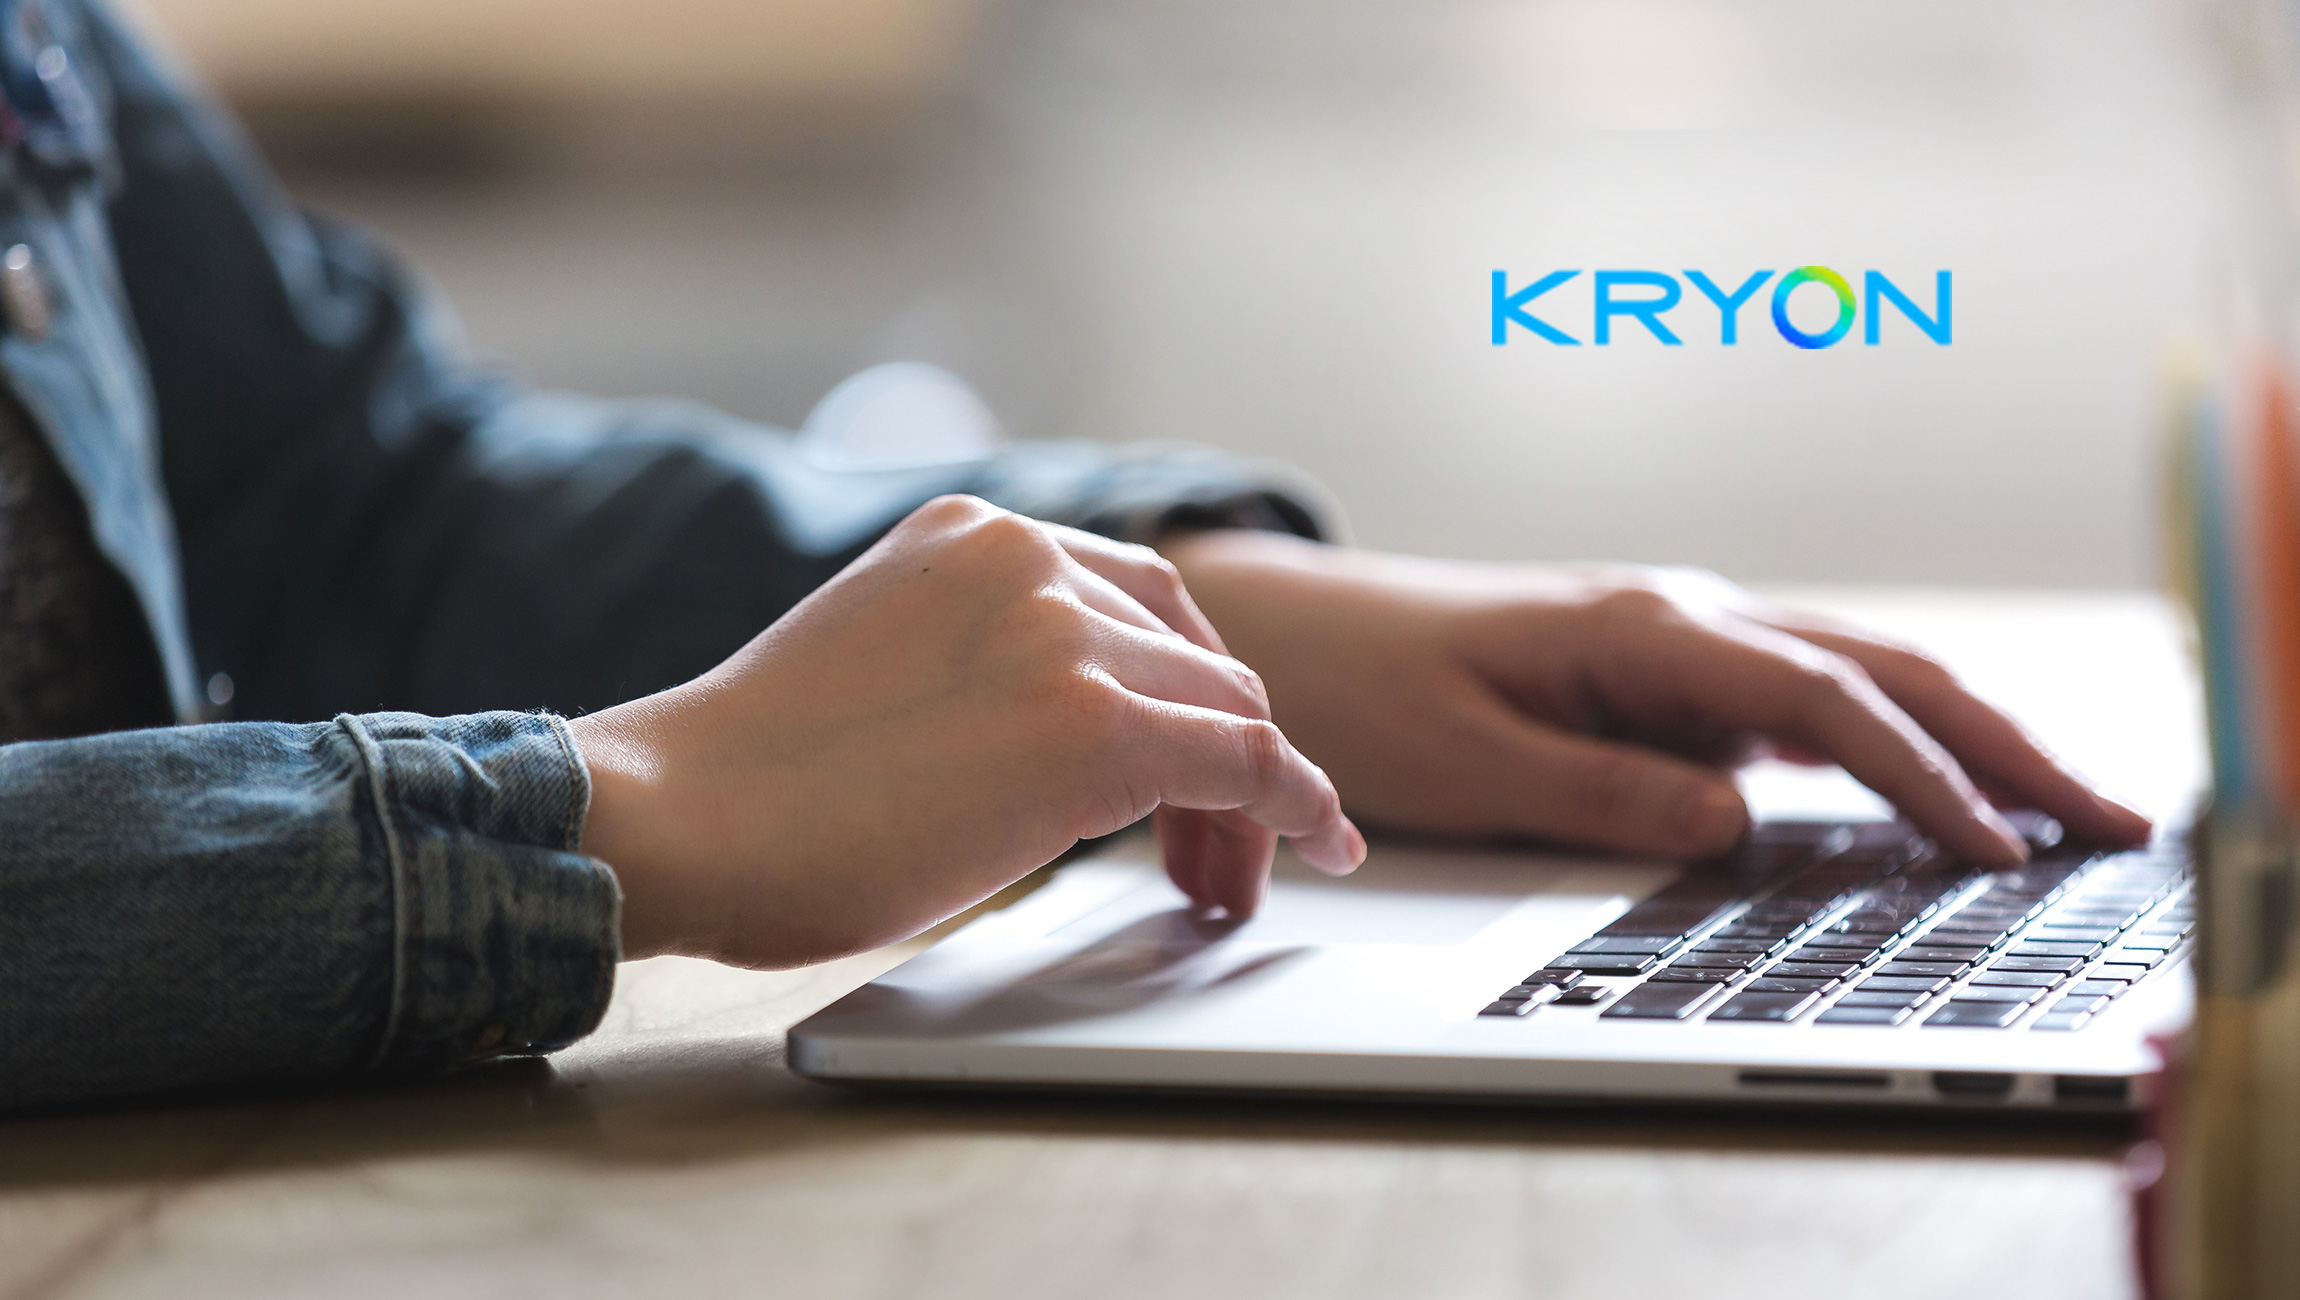 Full-Cycle Automation Leader Kryon Achieves Net Promoter Score of +68, Highest in the Industry